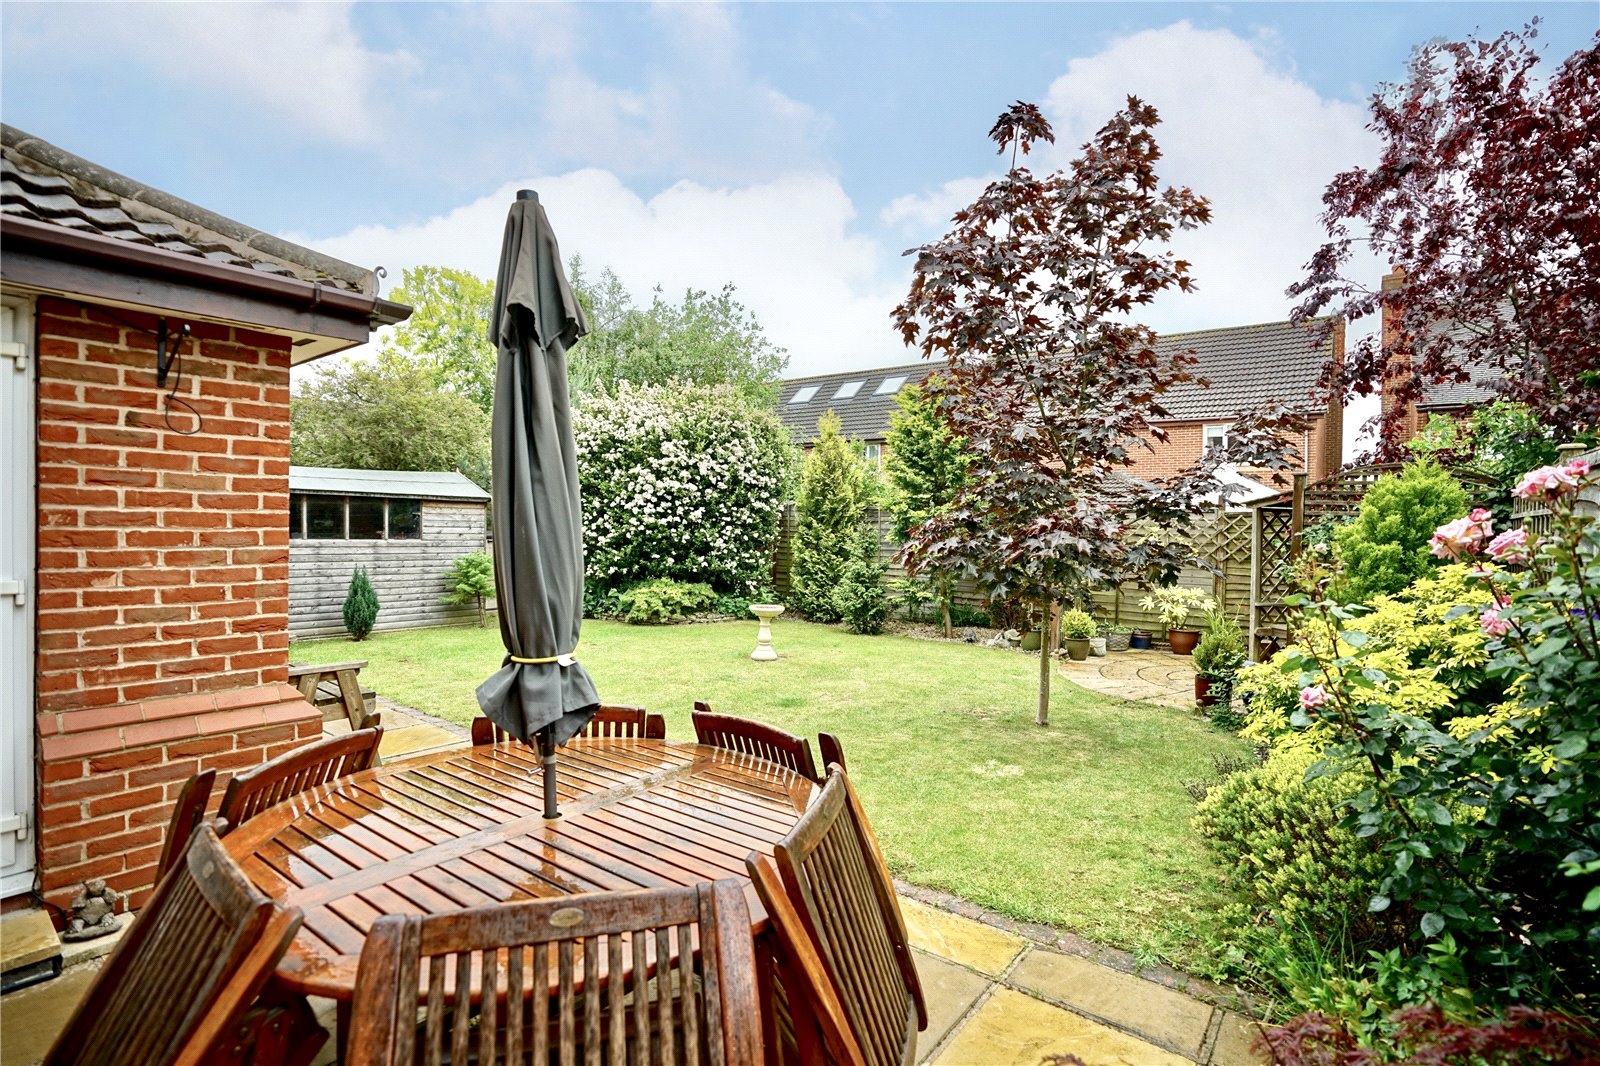 4 bed house for sale in Great Gransden 10